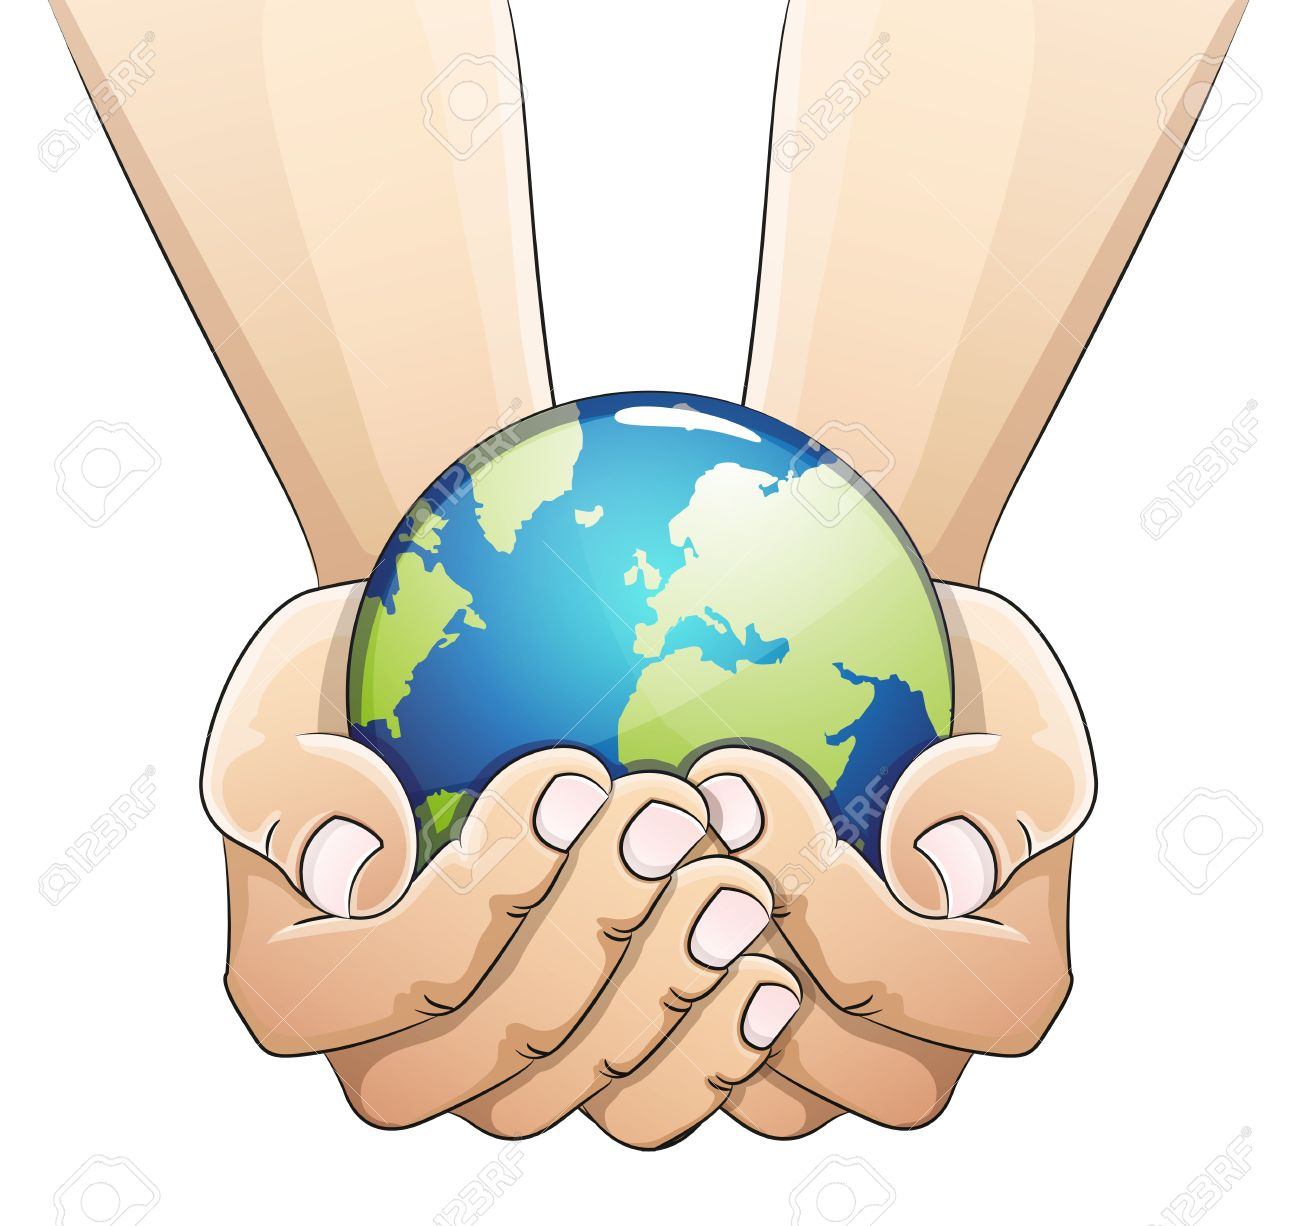 Hands holding the earth globe on white background. Saving the earth concept. Earth Day illustration. - 39543028